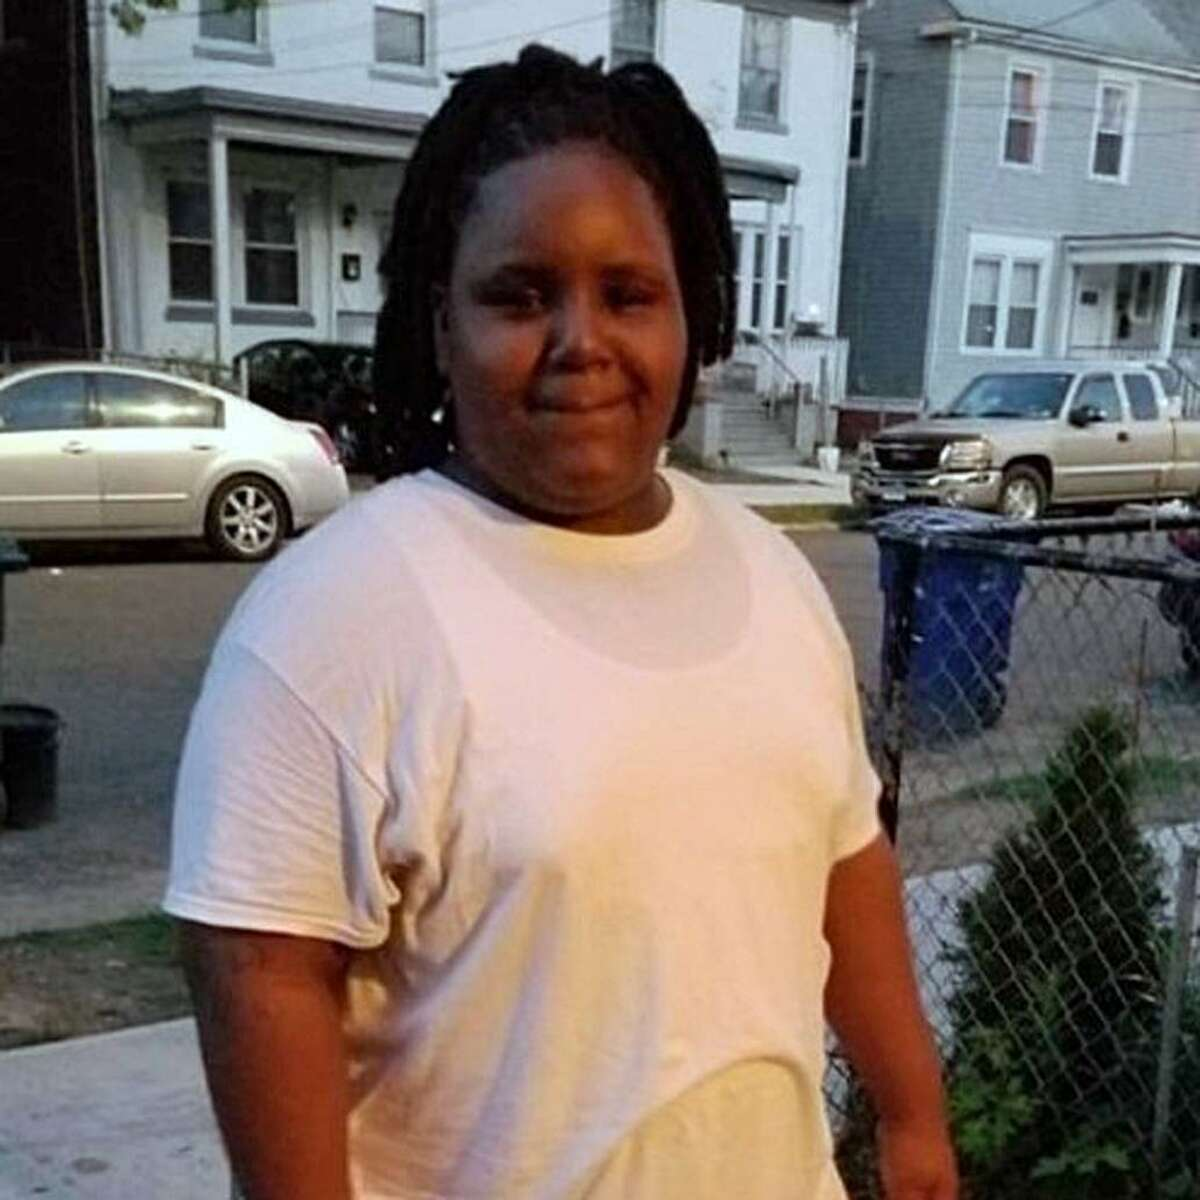 Clinton Howell, 12, of Bridgeport, Conn., was fatally shot on Dec. 18, 2018, in front of his home on Willow Street. Police said he was not the intended target.